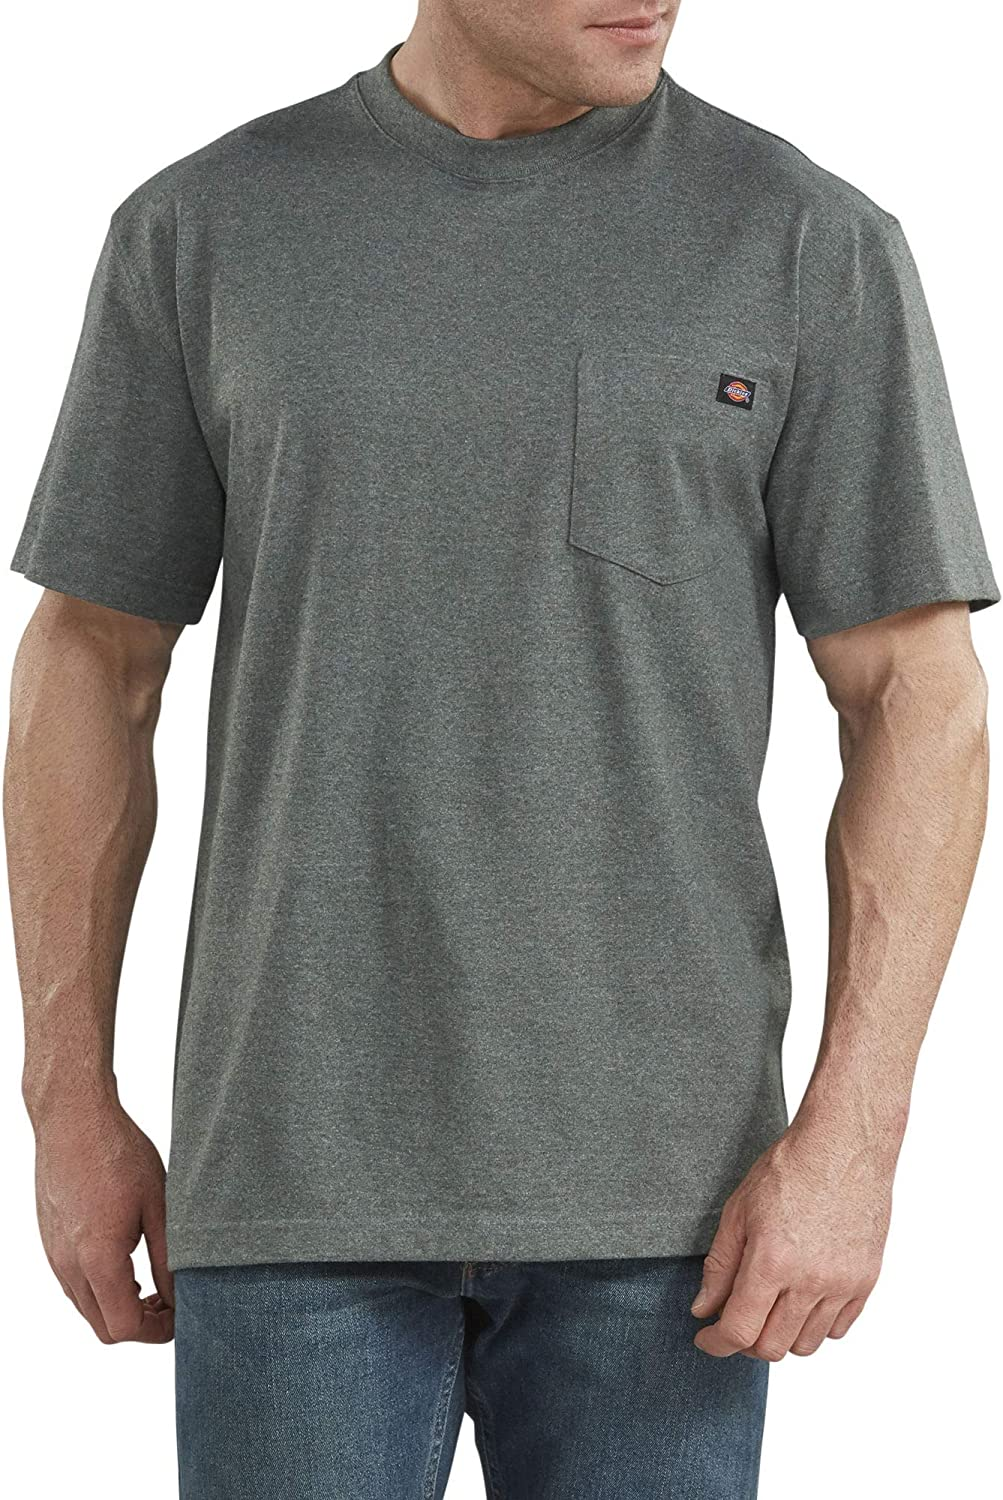 MEN/'S EASY CARE SHIRT SHORT SLEEVE POCKET WASH and WEAR TALL LT XLT 2T 3T 4T